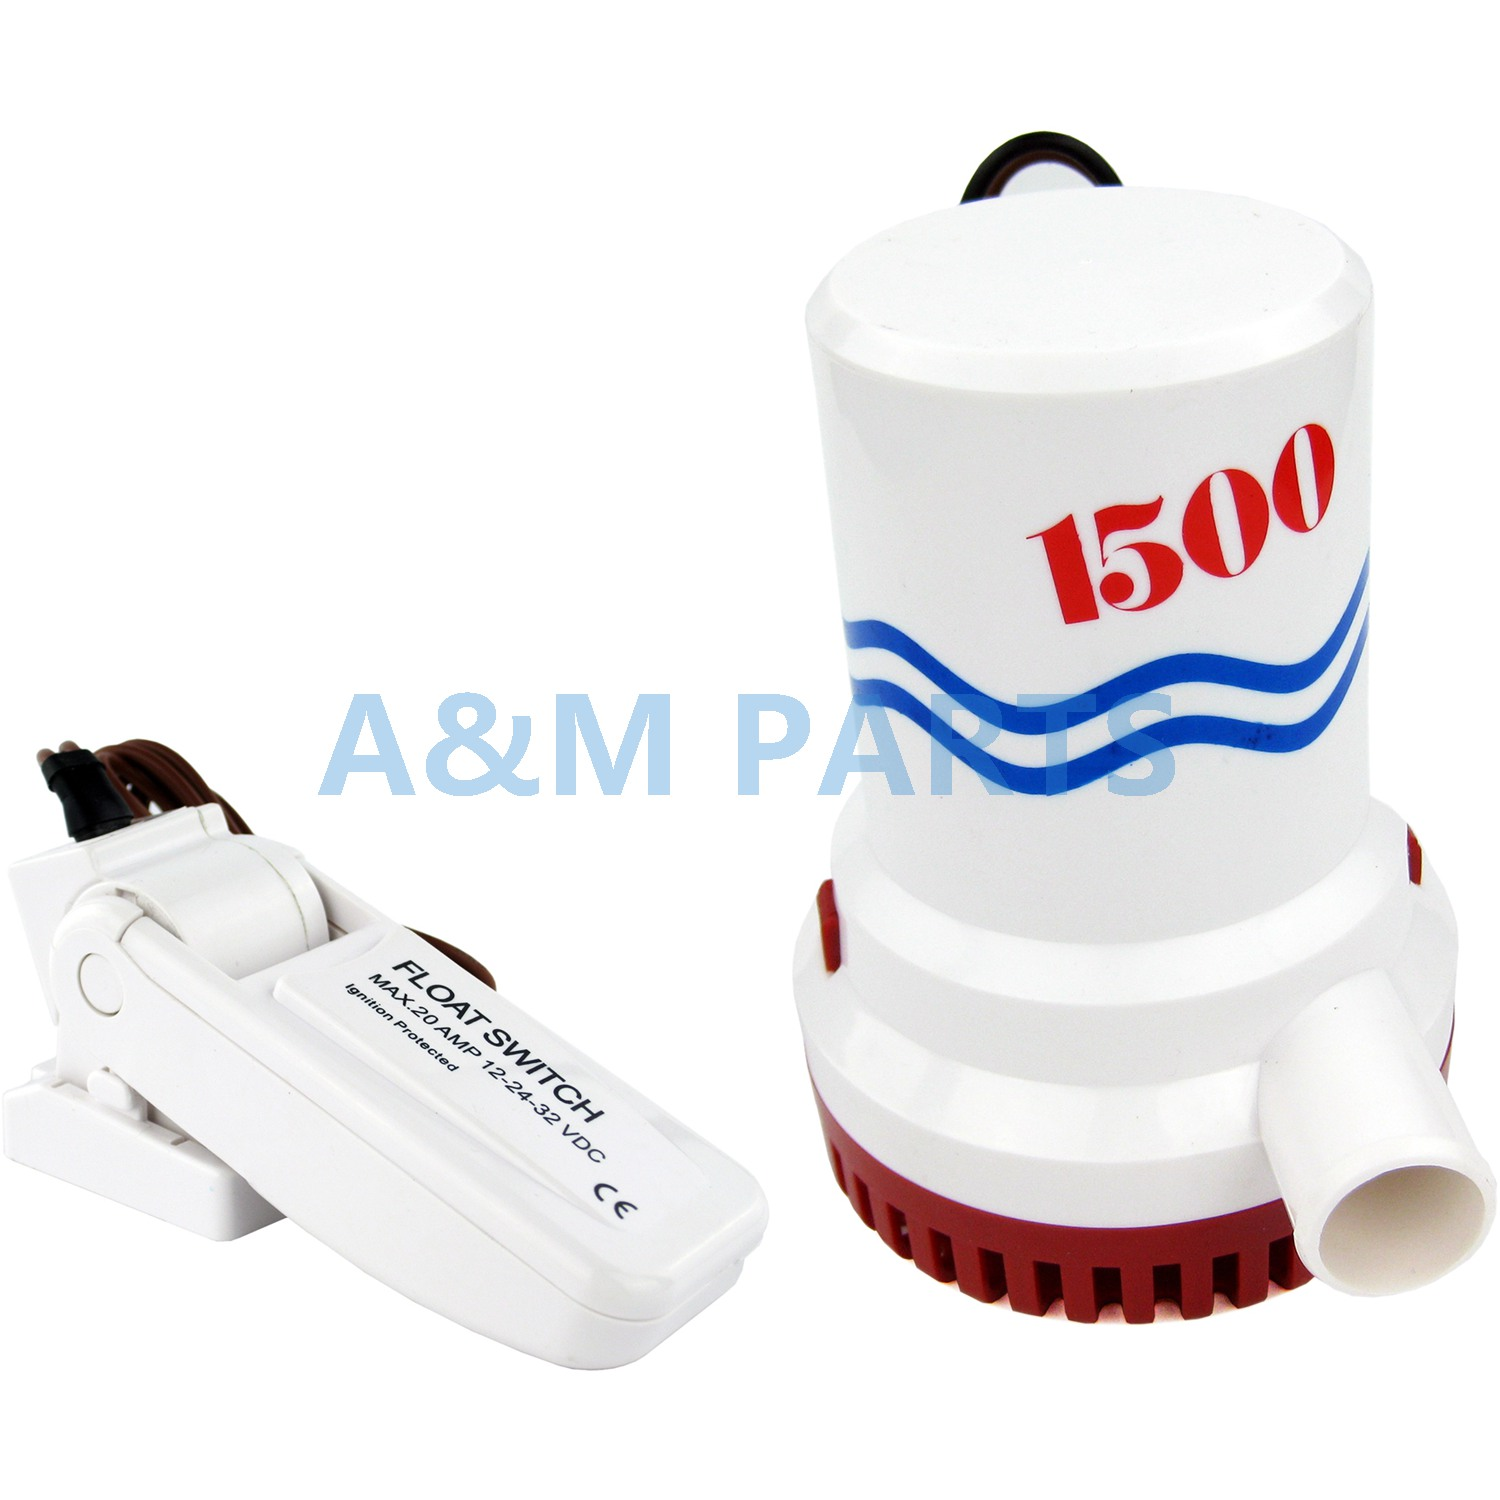 12V 1500GPH Bilge Pump Marine Boat Yacht Submersible Water Pump W/ Float Switch sailflo new mini bilge pump marine water aspirator fountain submersible yacht boat electric marine bilge pump